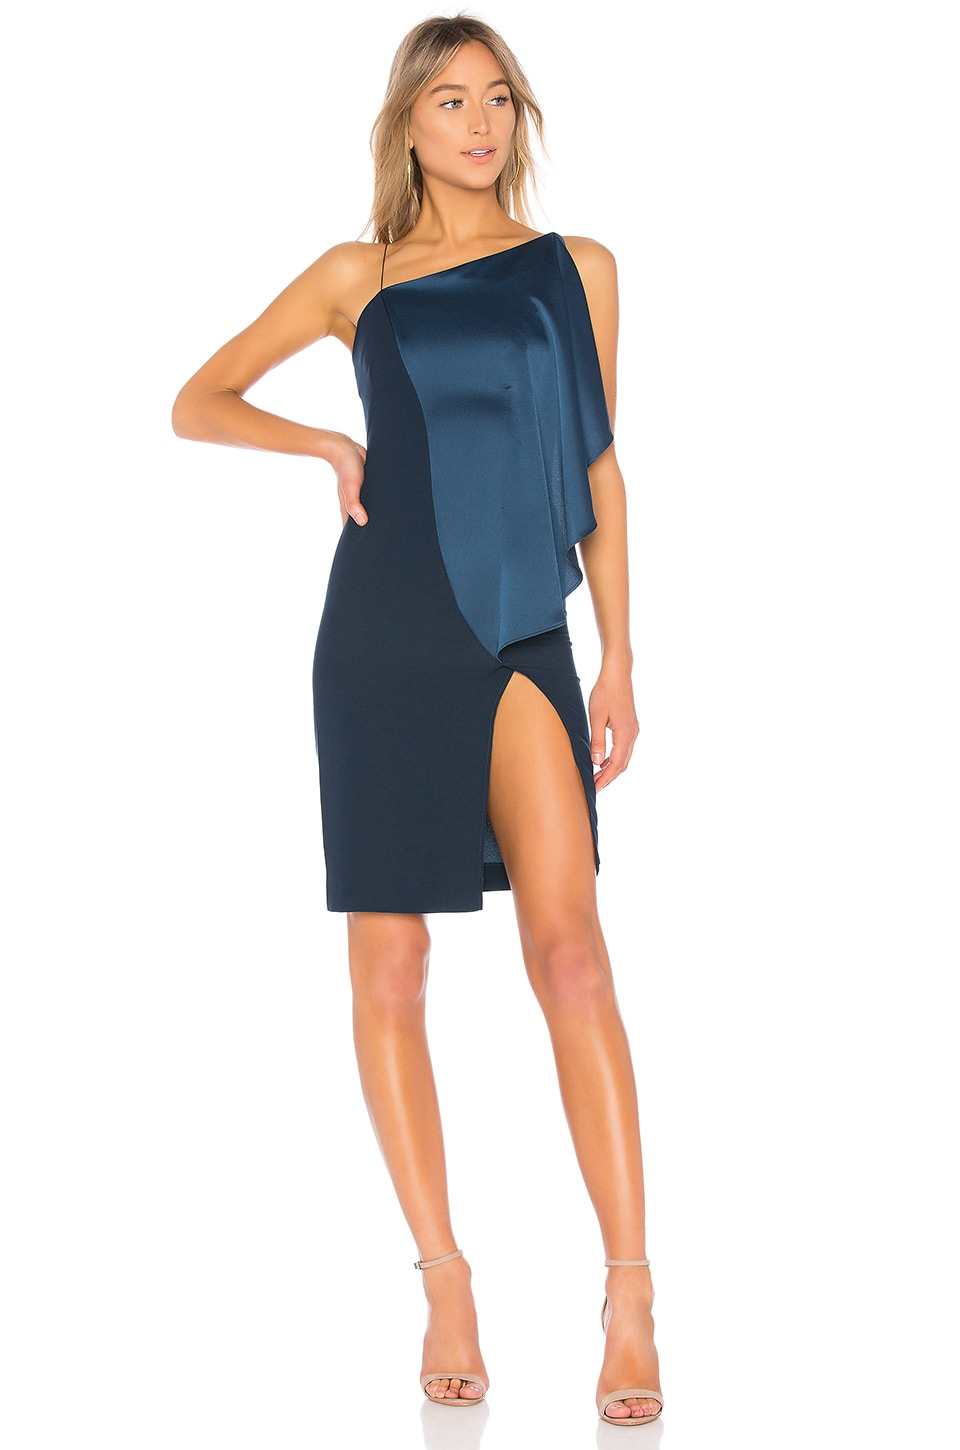 AQ/AQ Hestia Dress in Navy